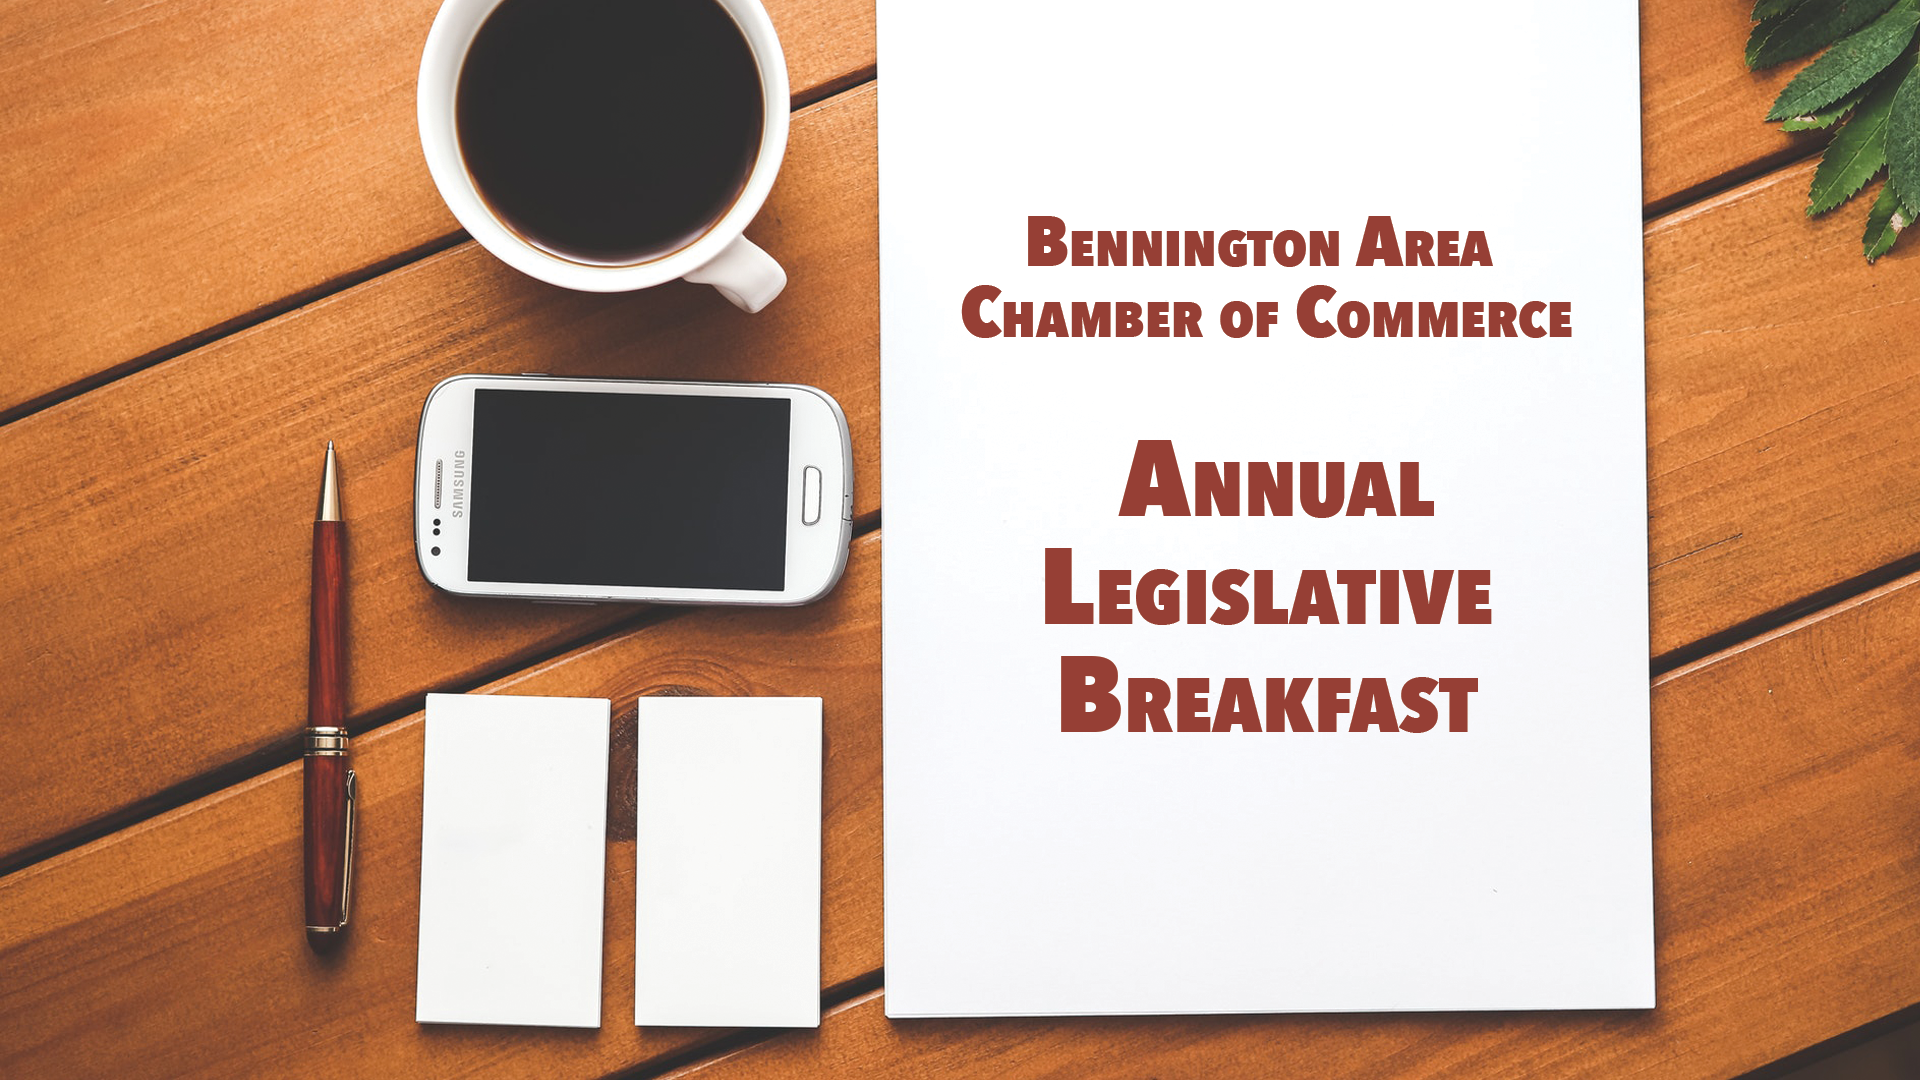 Leg-Breakfast-Facebook-Event-Cover.png